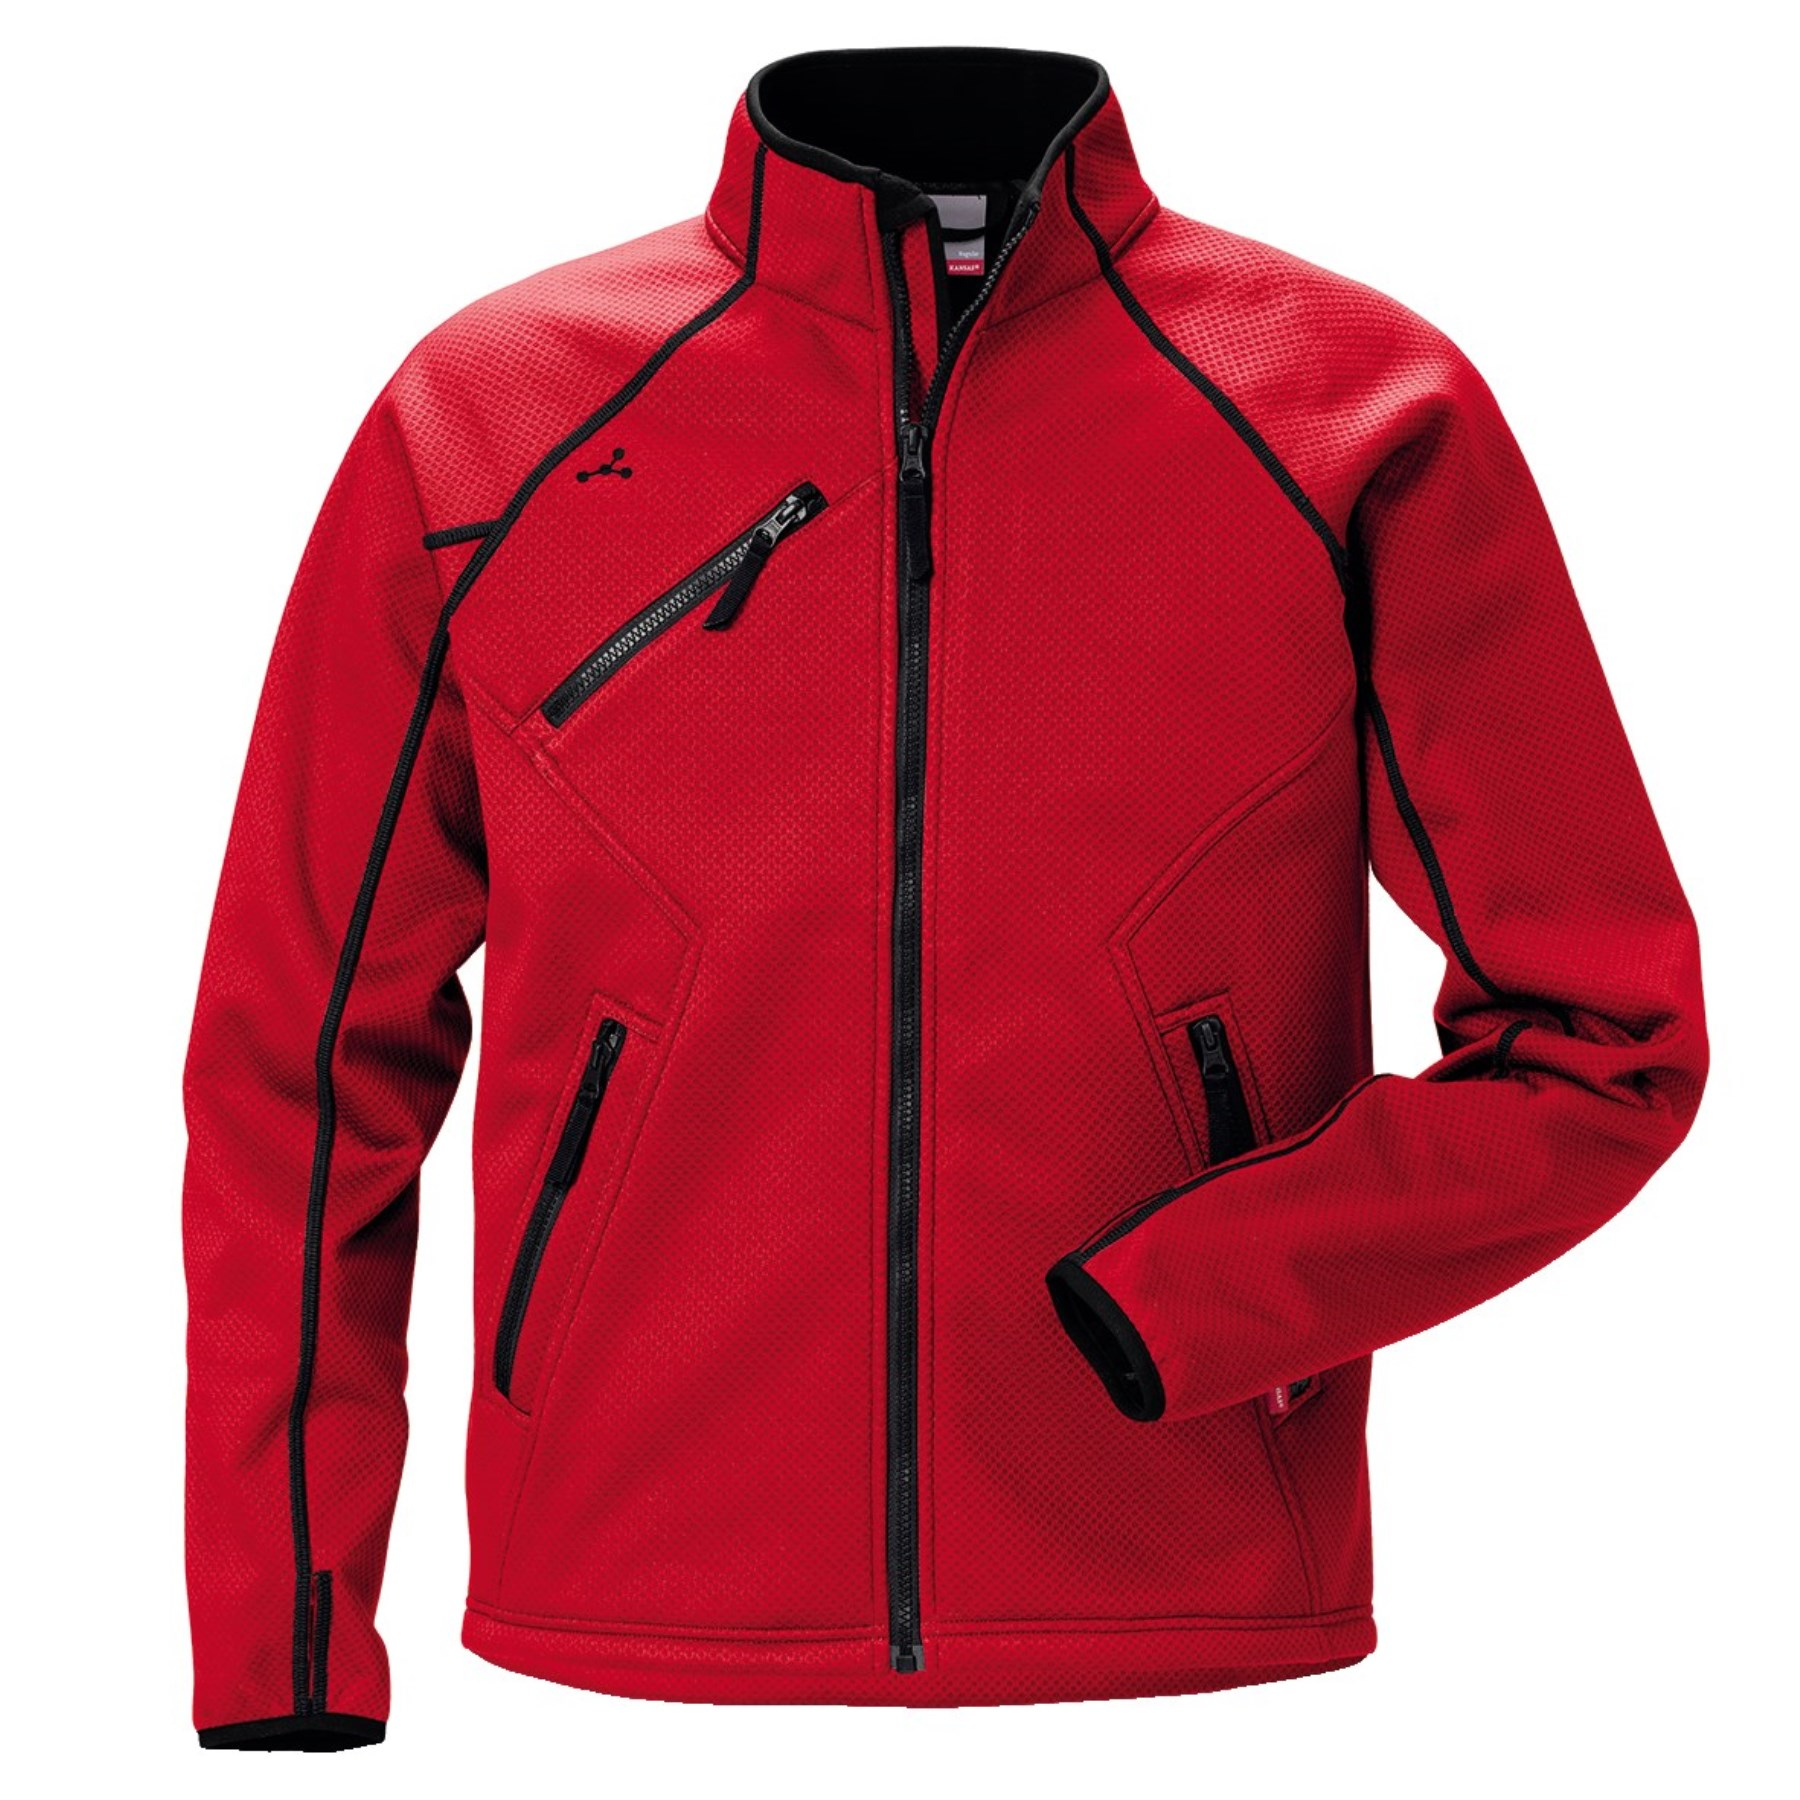 1237974 - Softshell Stretch Jacke Gr.S rot